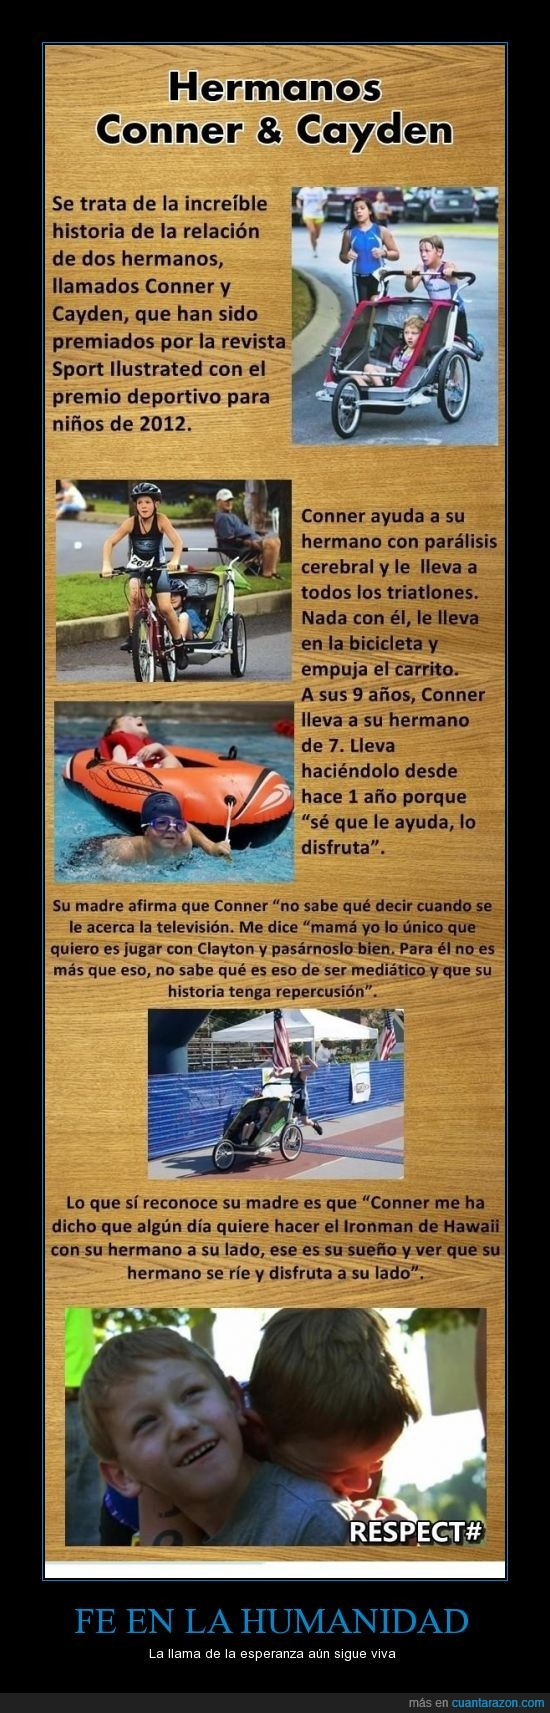 cayden,conner,esperanza,fe,hermanos,humanidad,ironman,paralisis,respect,triatlon